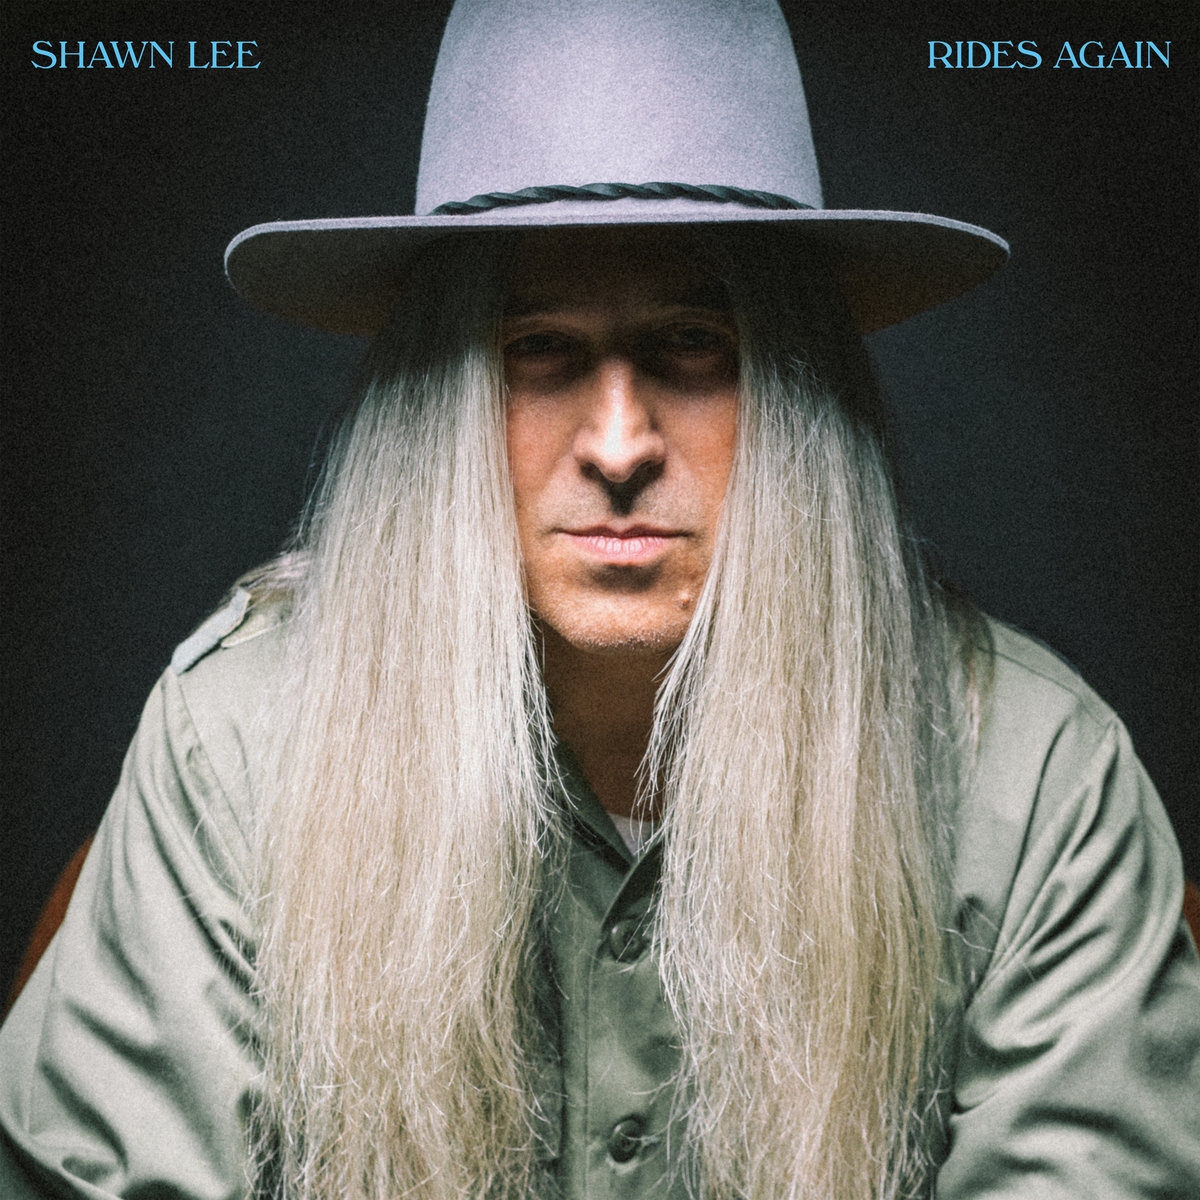 Image result for shawn lee rides again""